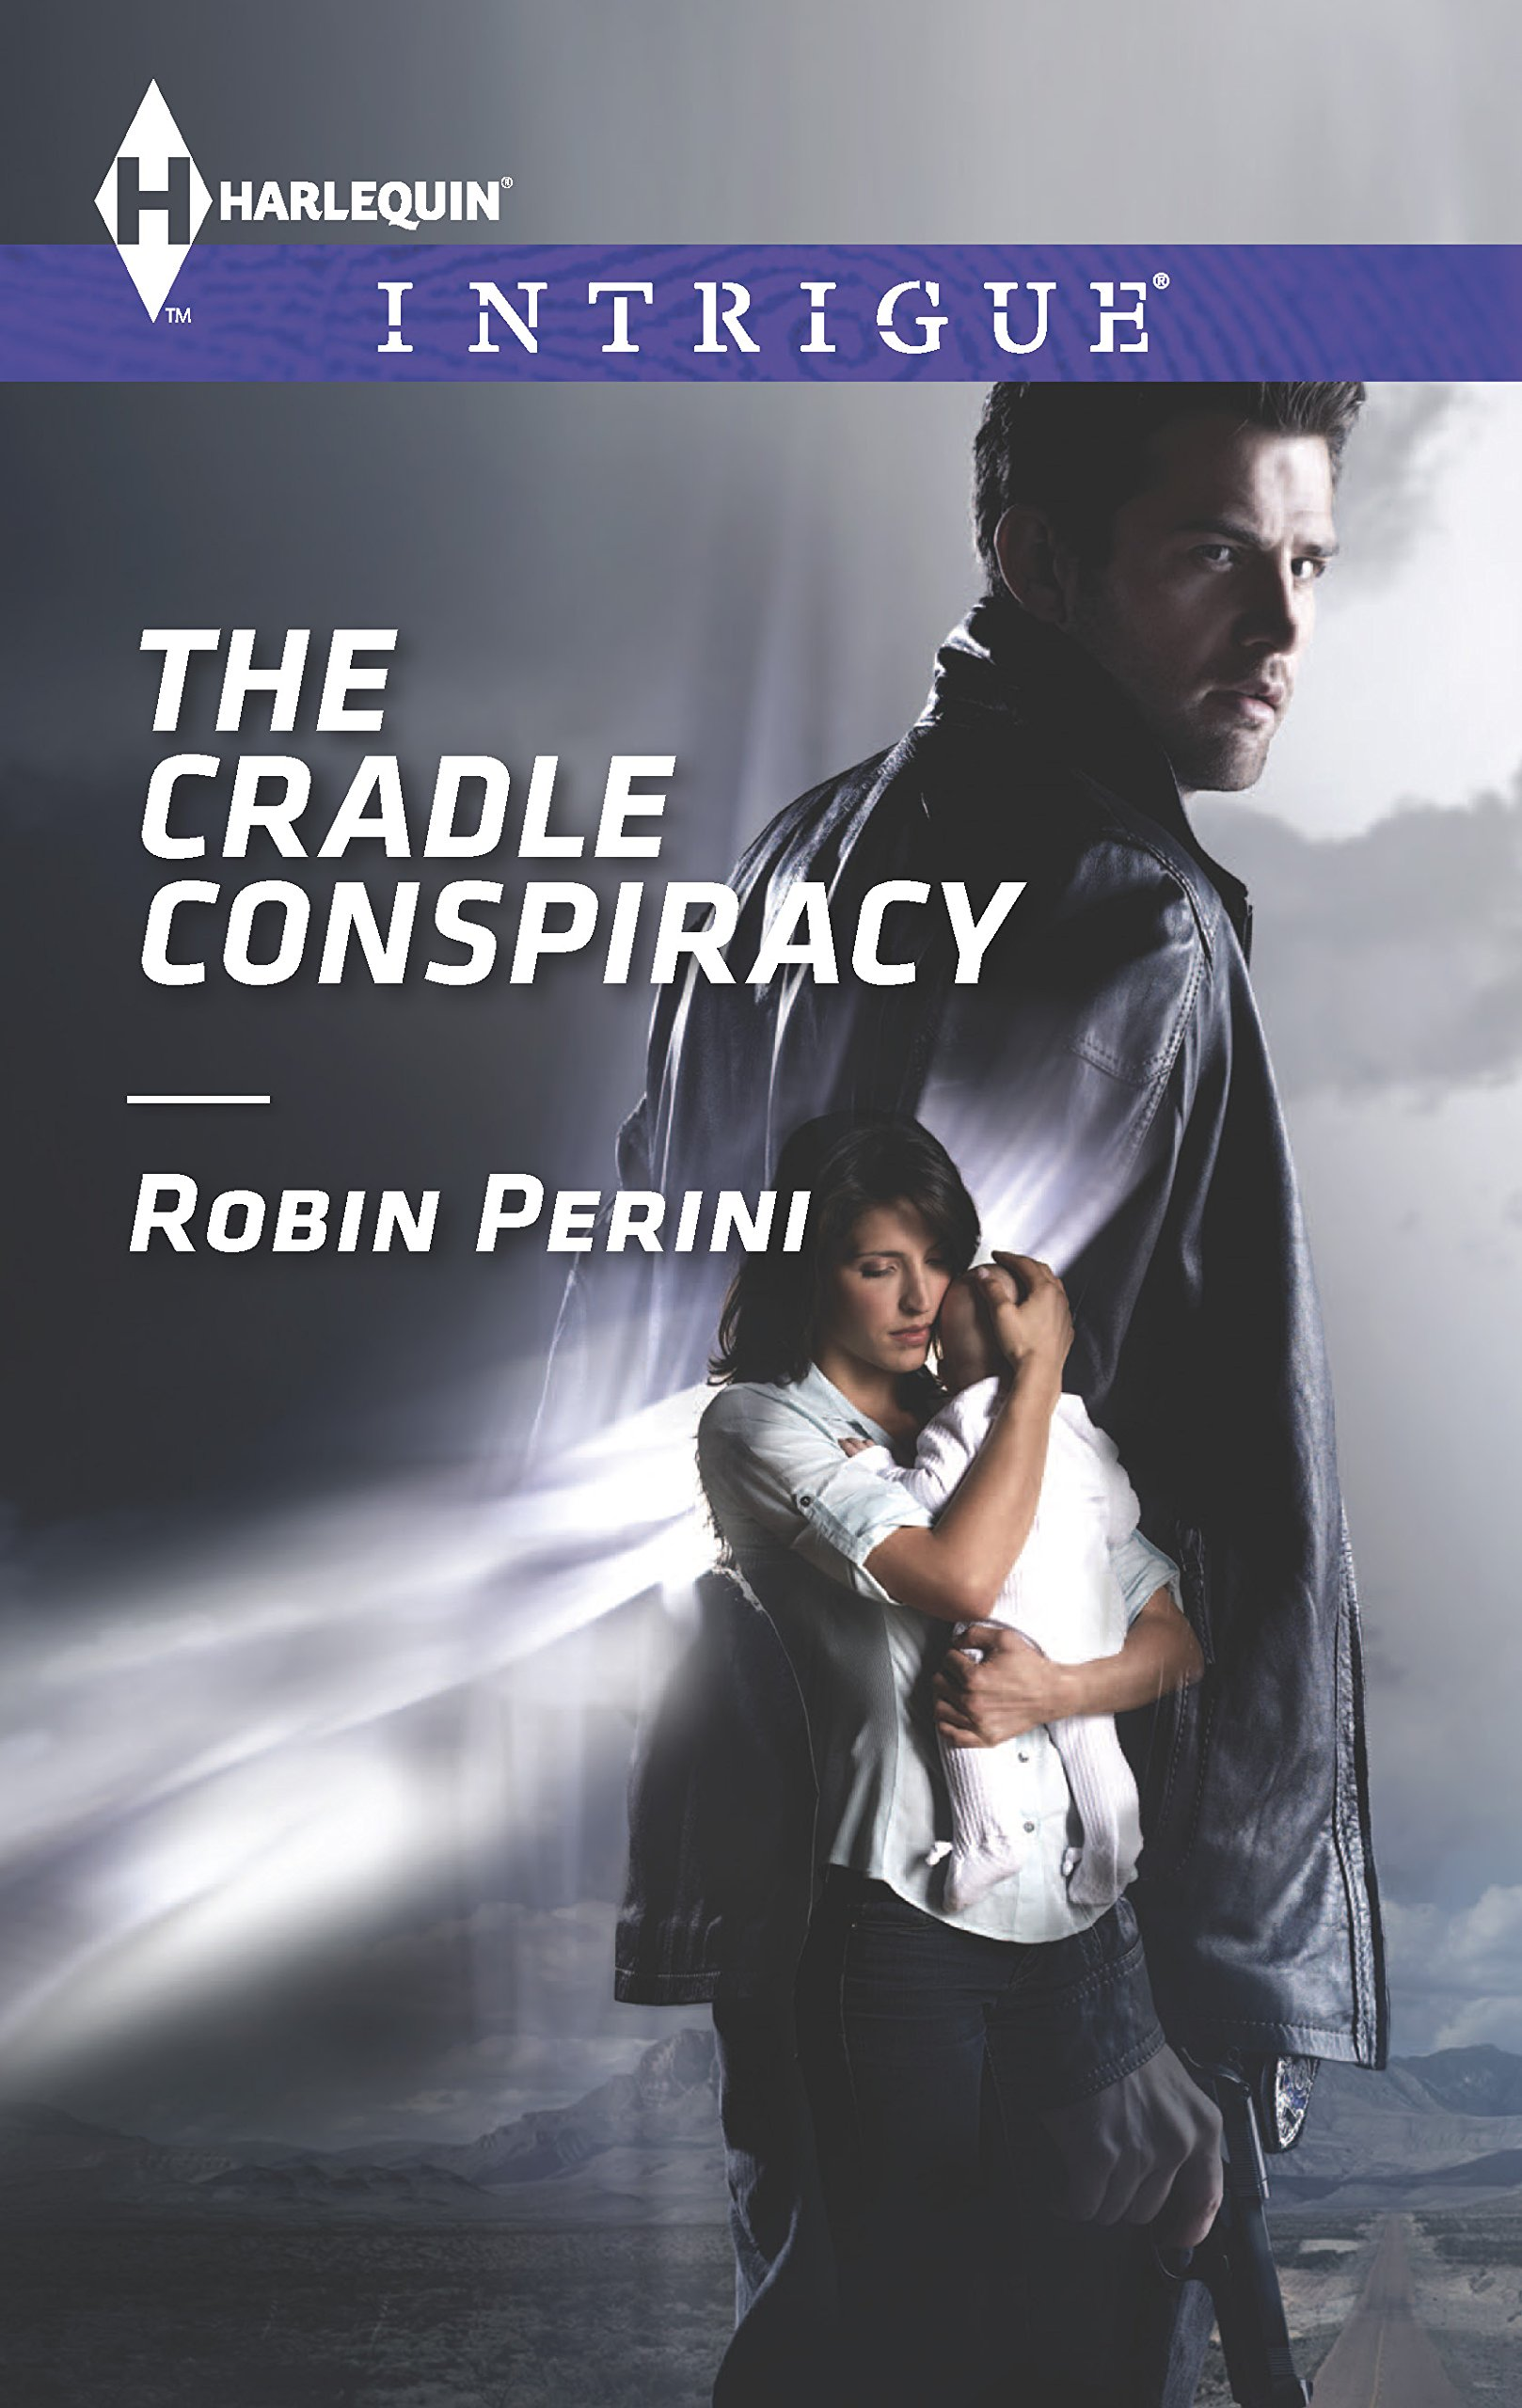 The Cradle Conspiracy (Harlequin Intrigue): Robin Perini: 9780373697328: Amazon.com: Books